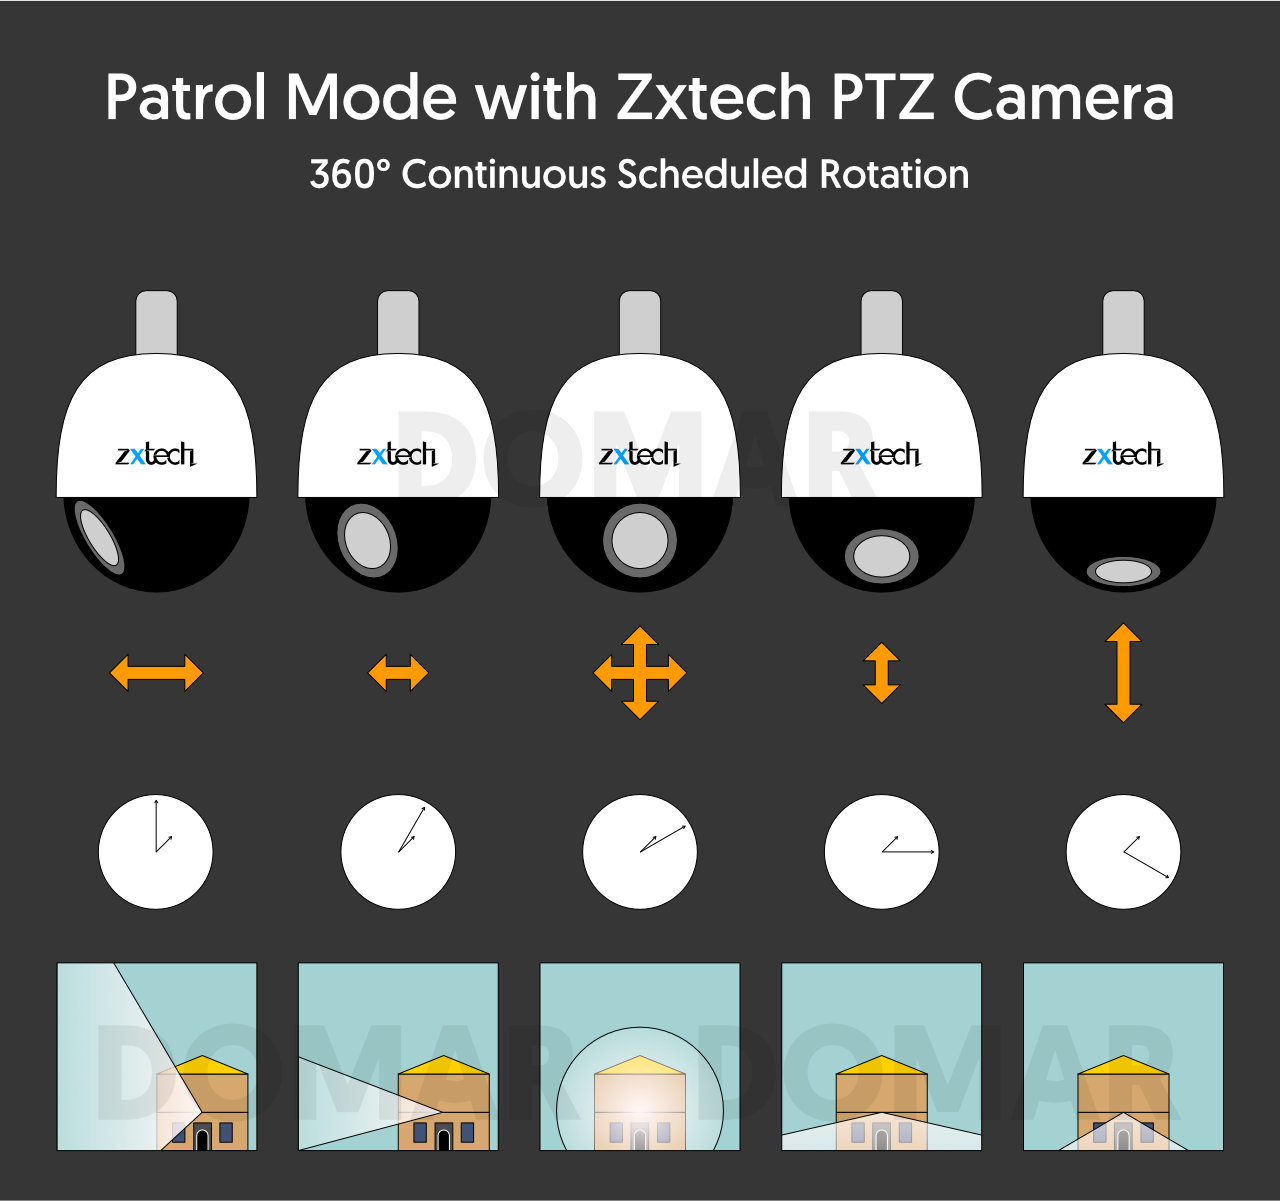 Patrol Mode with Zxtech PTZ Camera